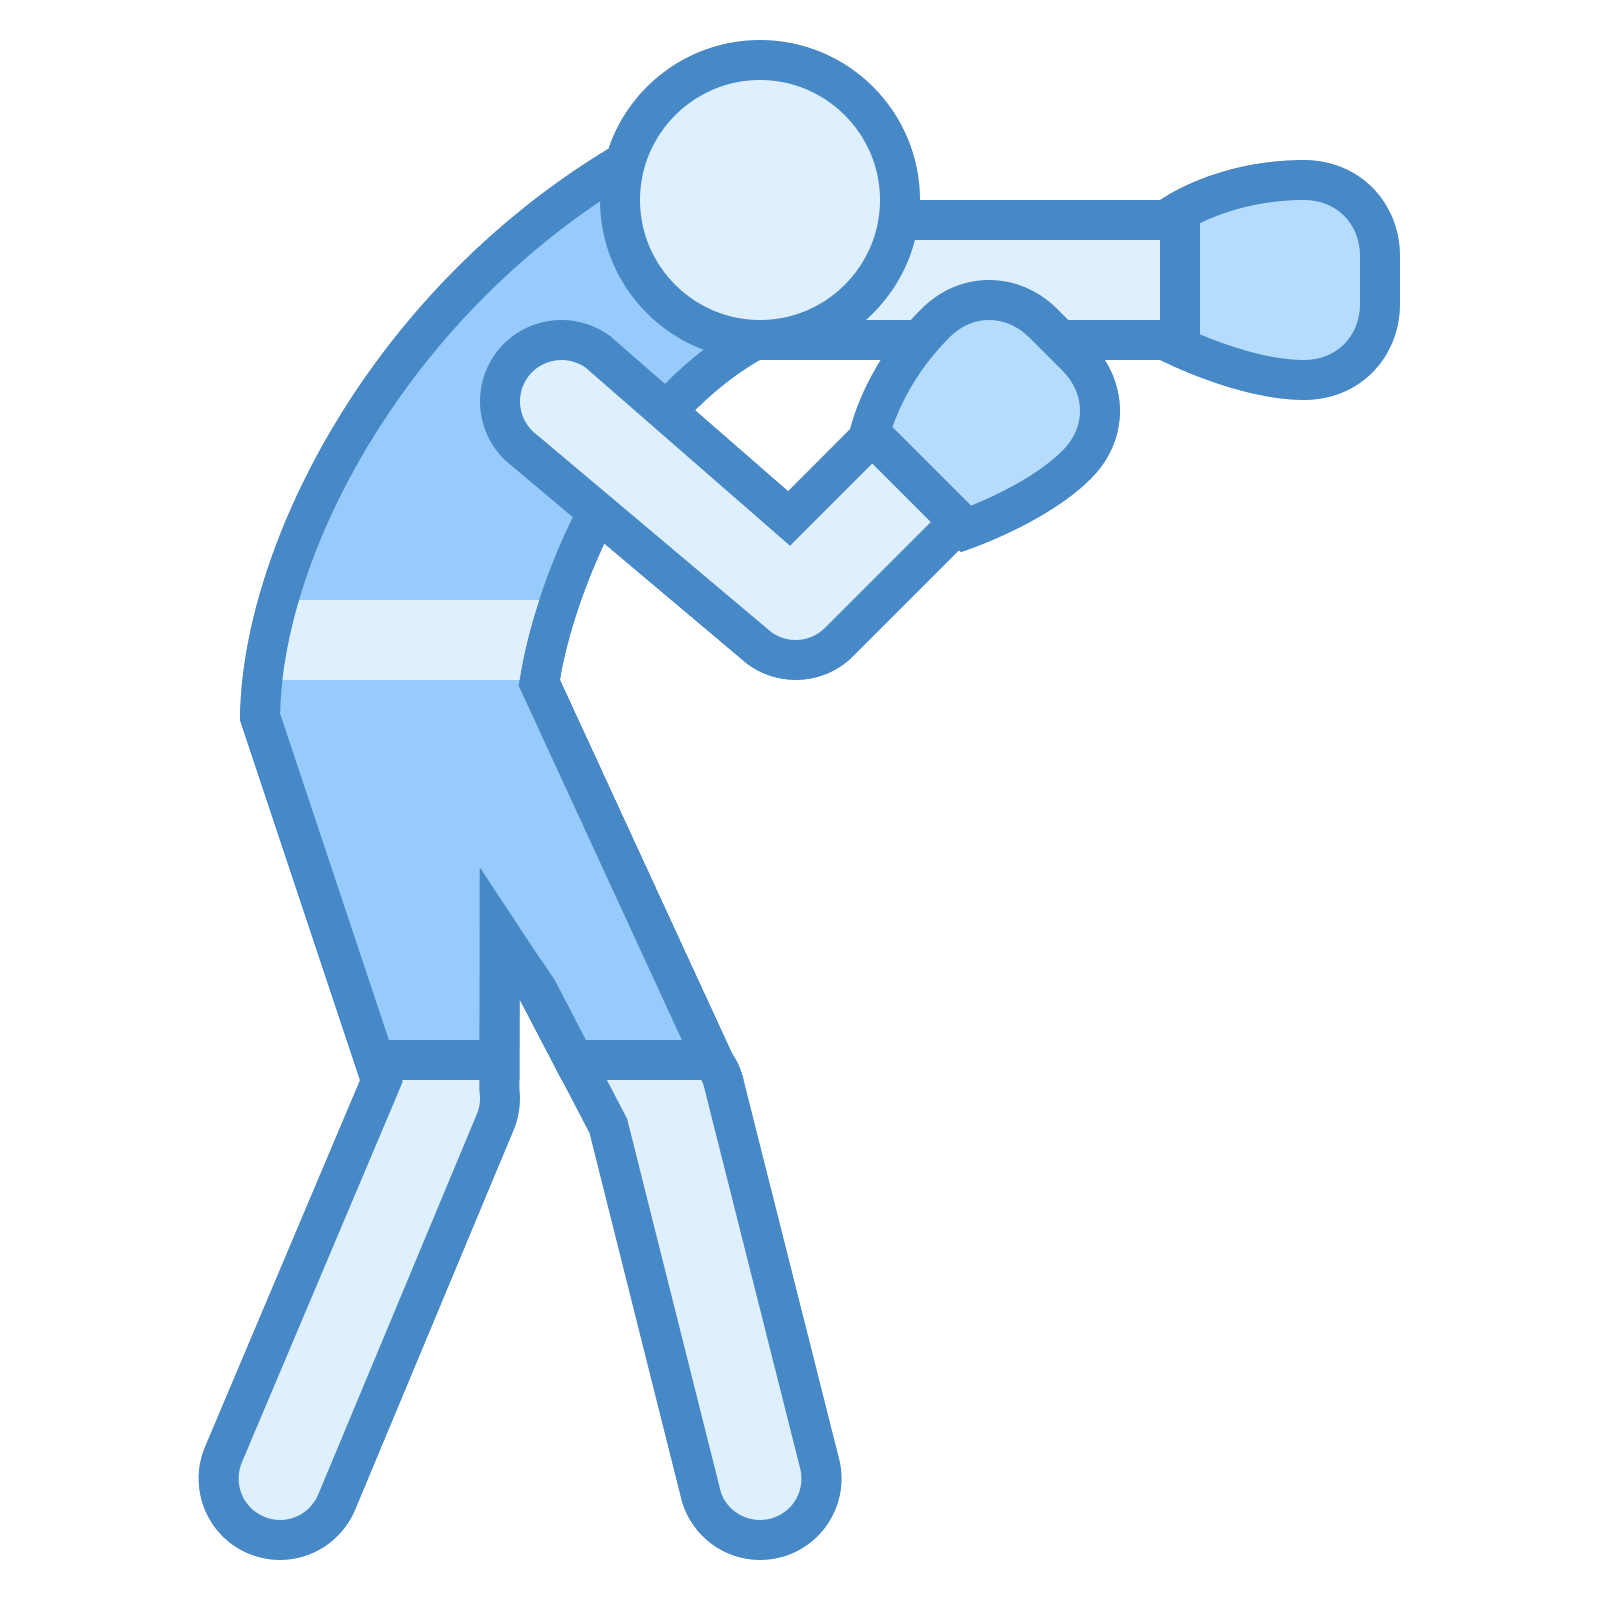 vector download Boxer clipart boxing stance. Icon free download png